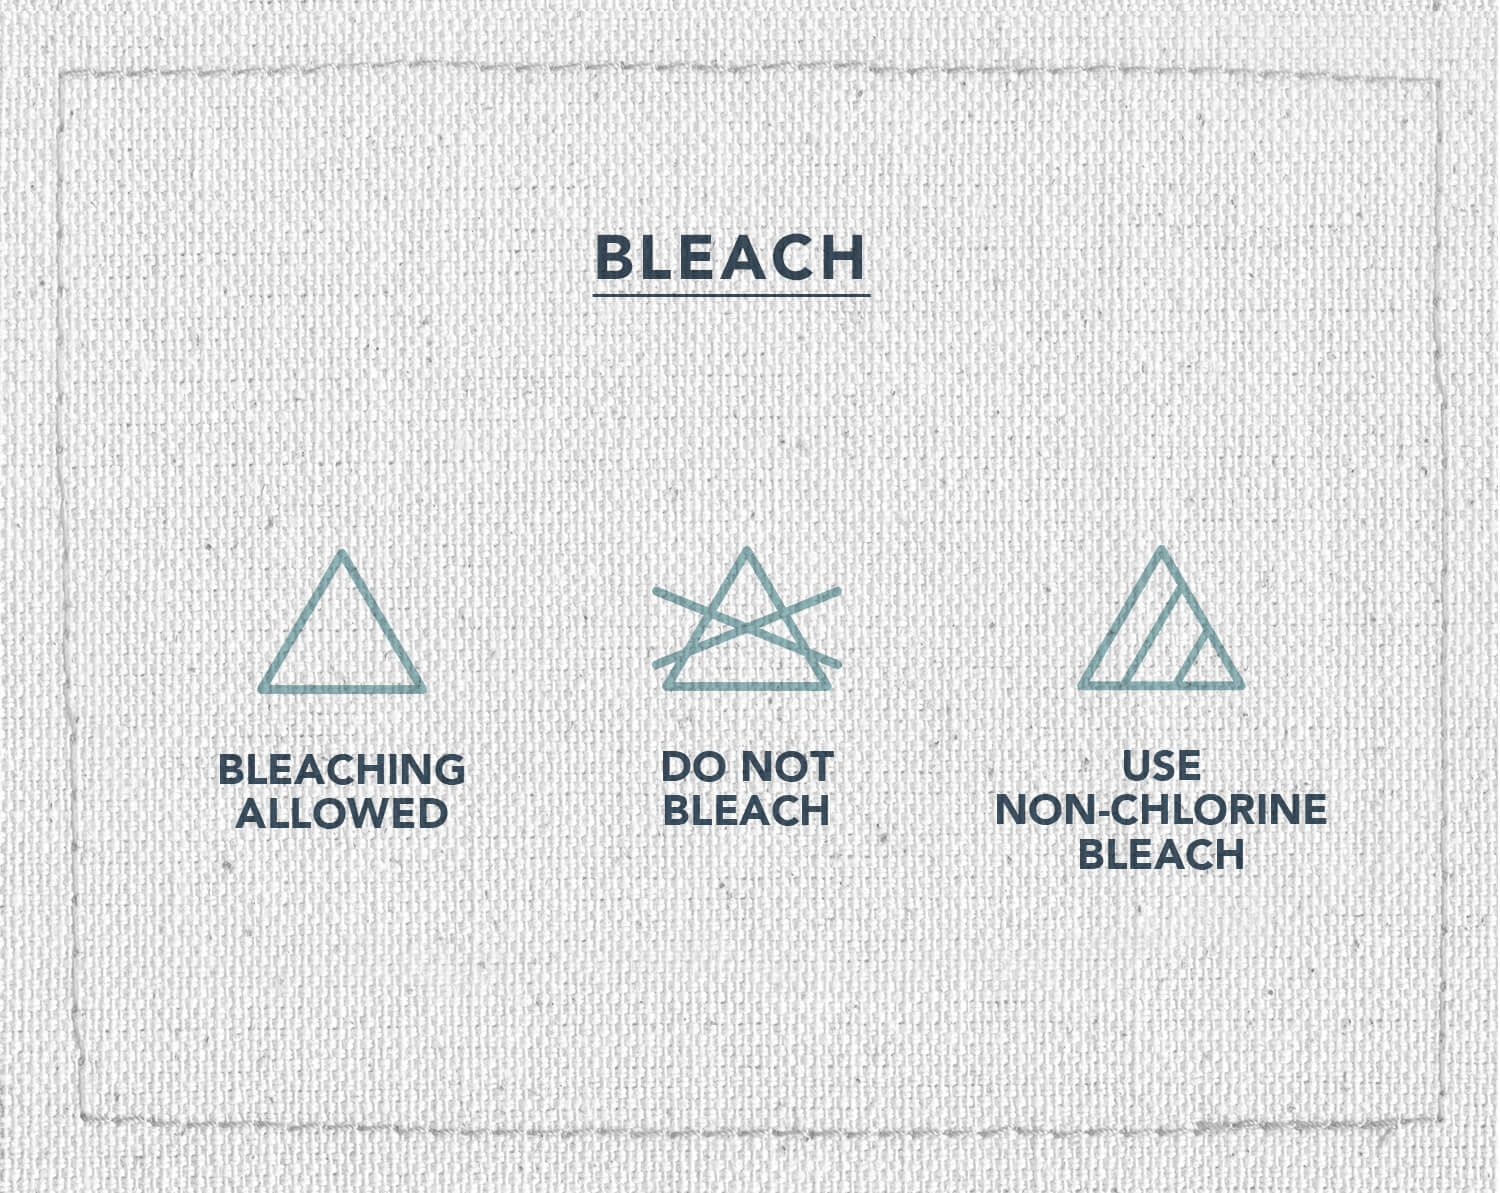 An infographic of three laundry care symbols, indicating if you can bleach that article of clothing or not, bleaching allowed, do not bleach, or use non-chlorine bleach